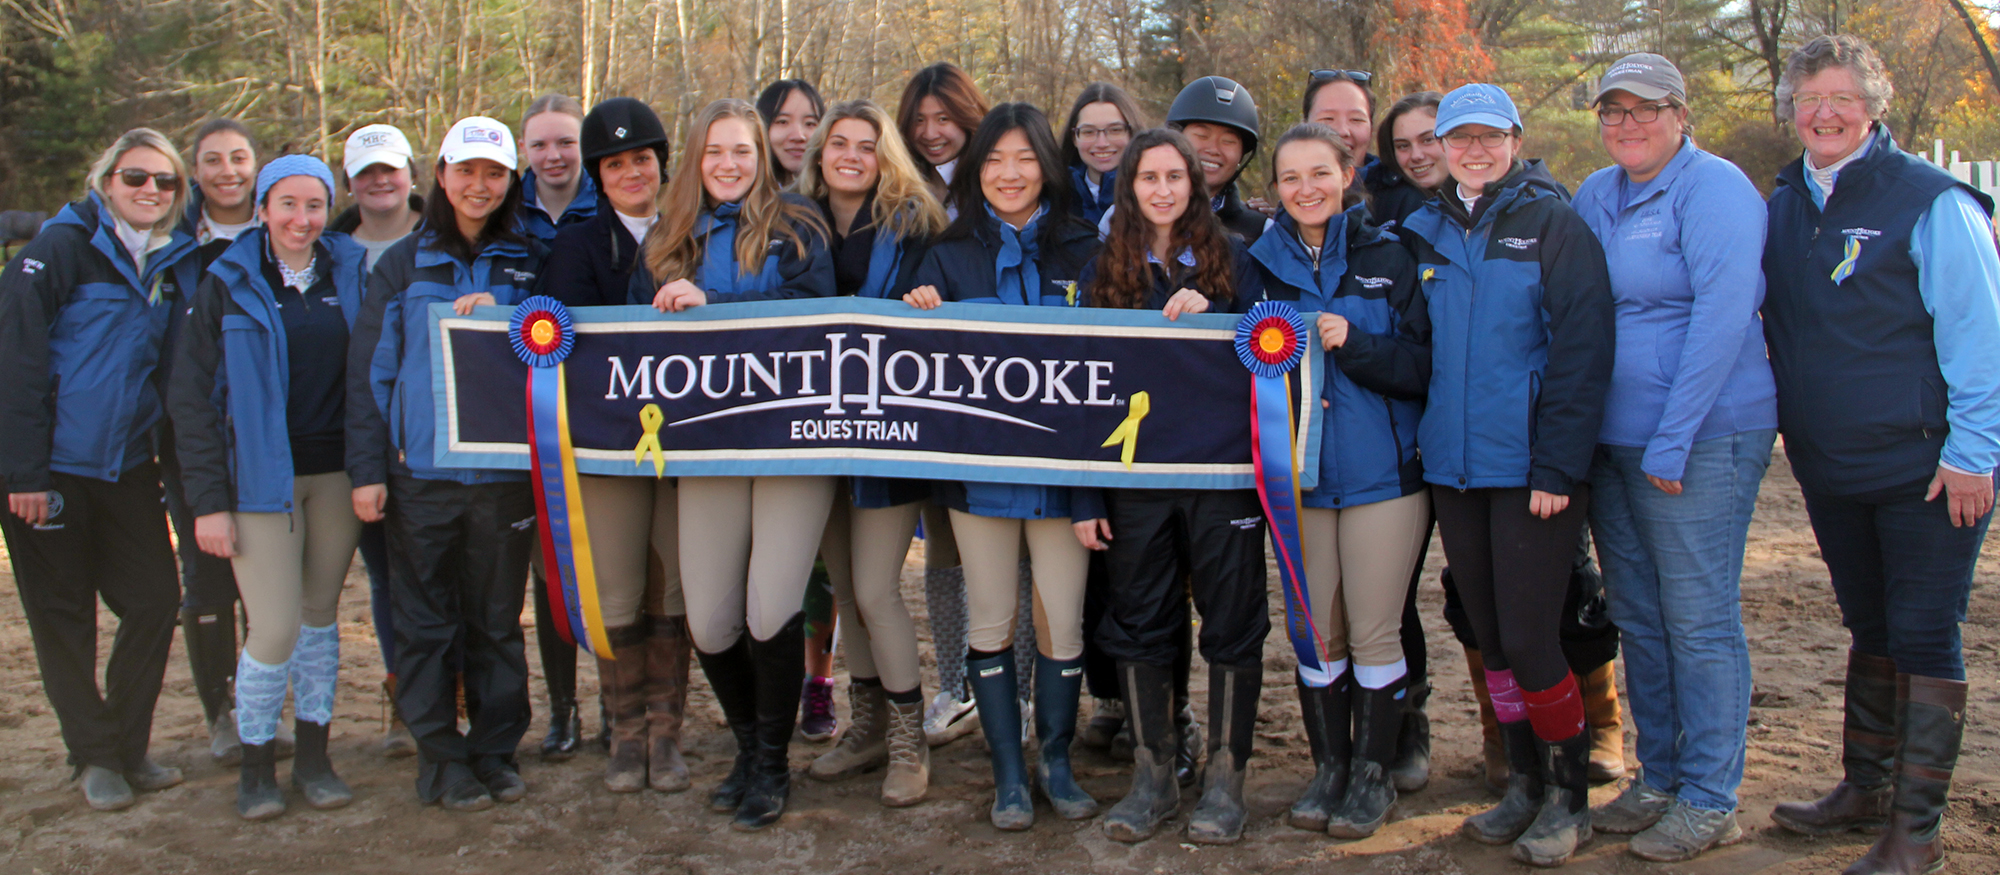 Photo of the Lyons riding team following their High Point win at the UMass Show on Nov. 4, 2018.